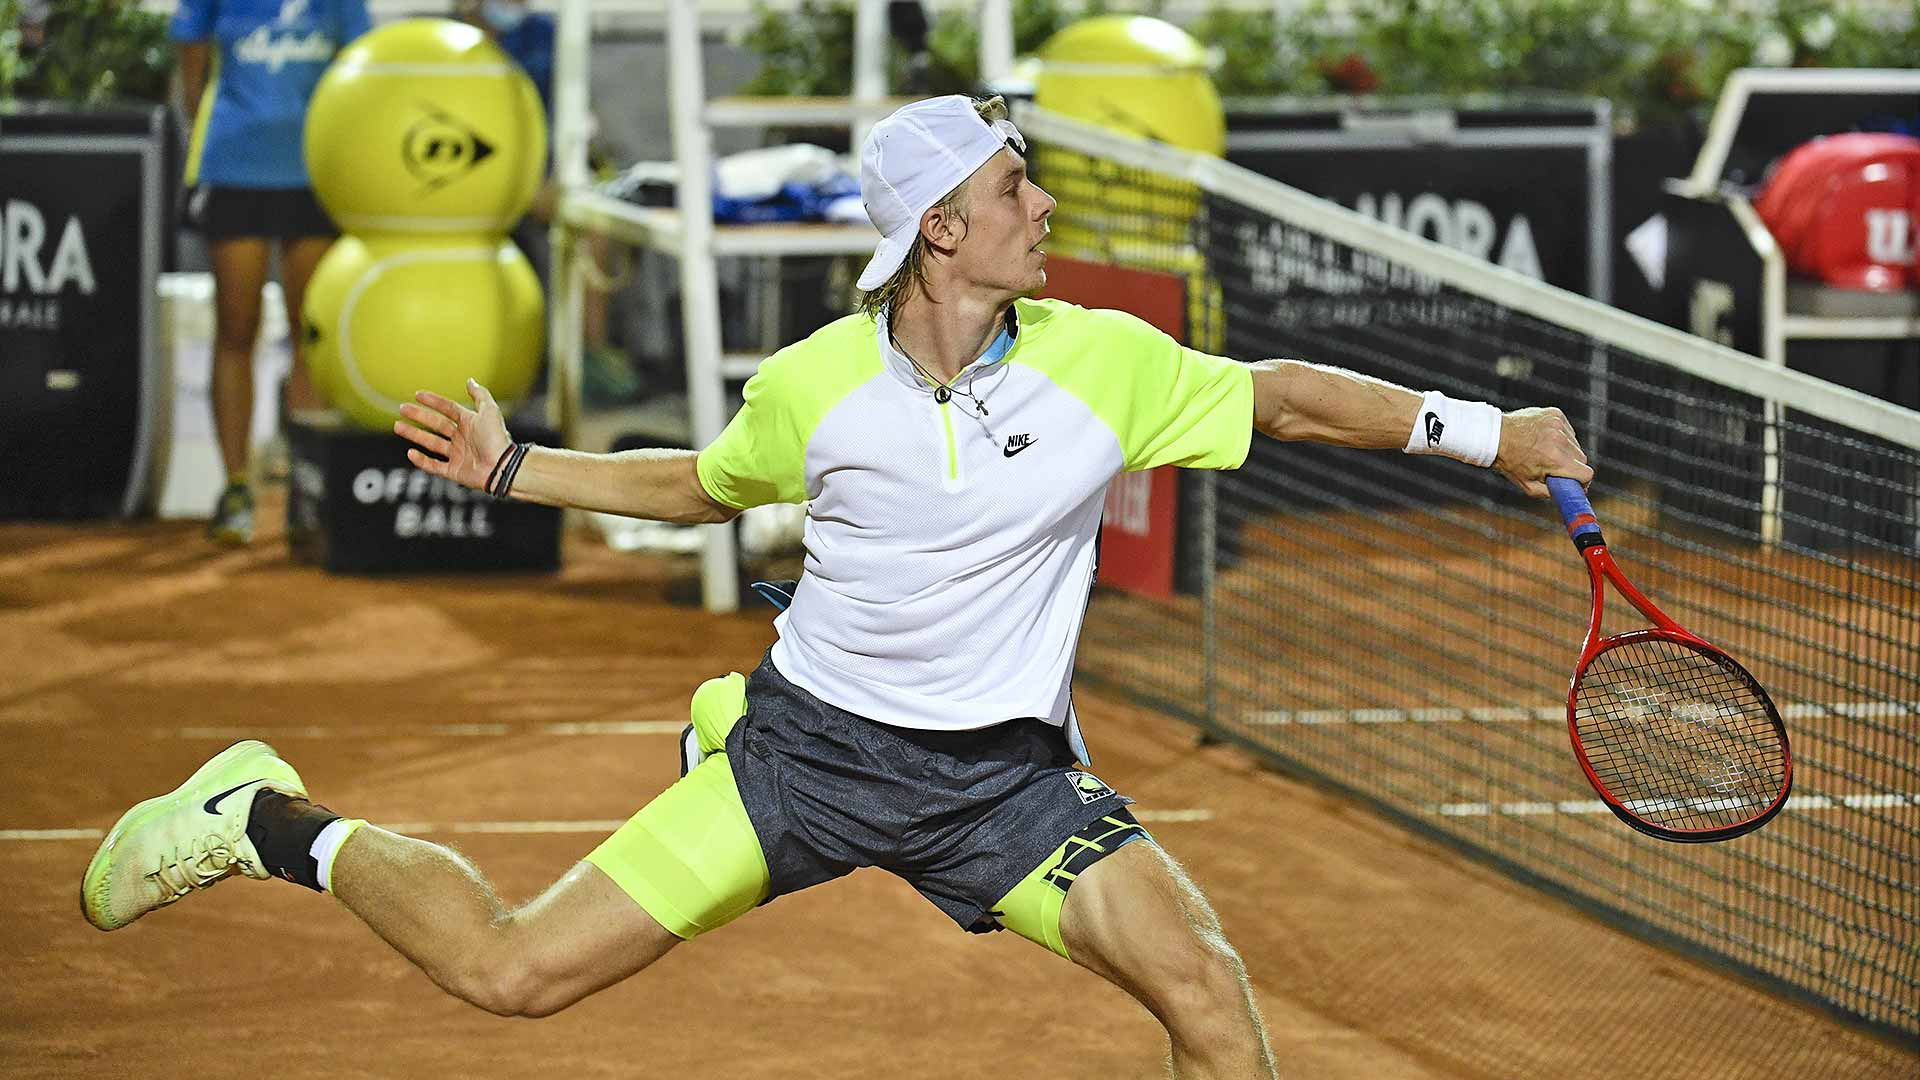 Denis Shapovalov claims his 100th tour-level match win to reach the Rome semi-finals.